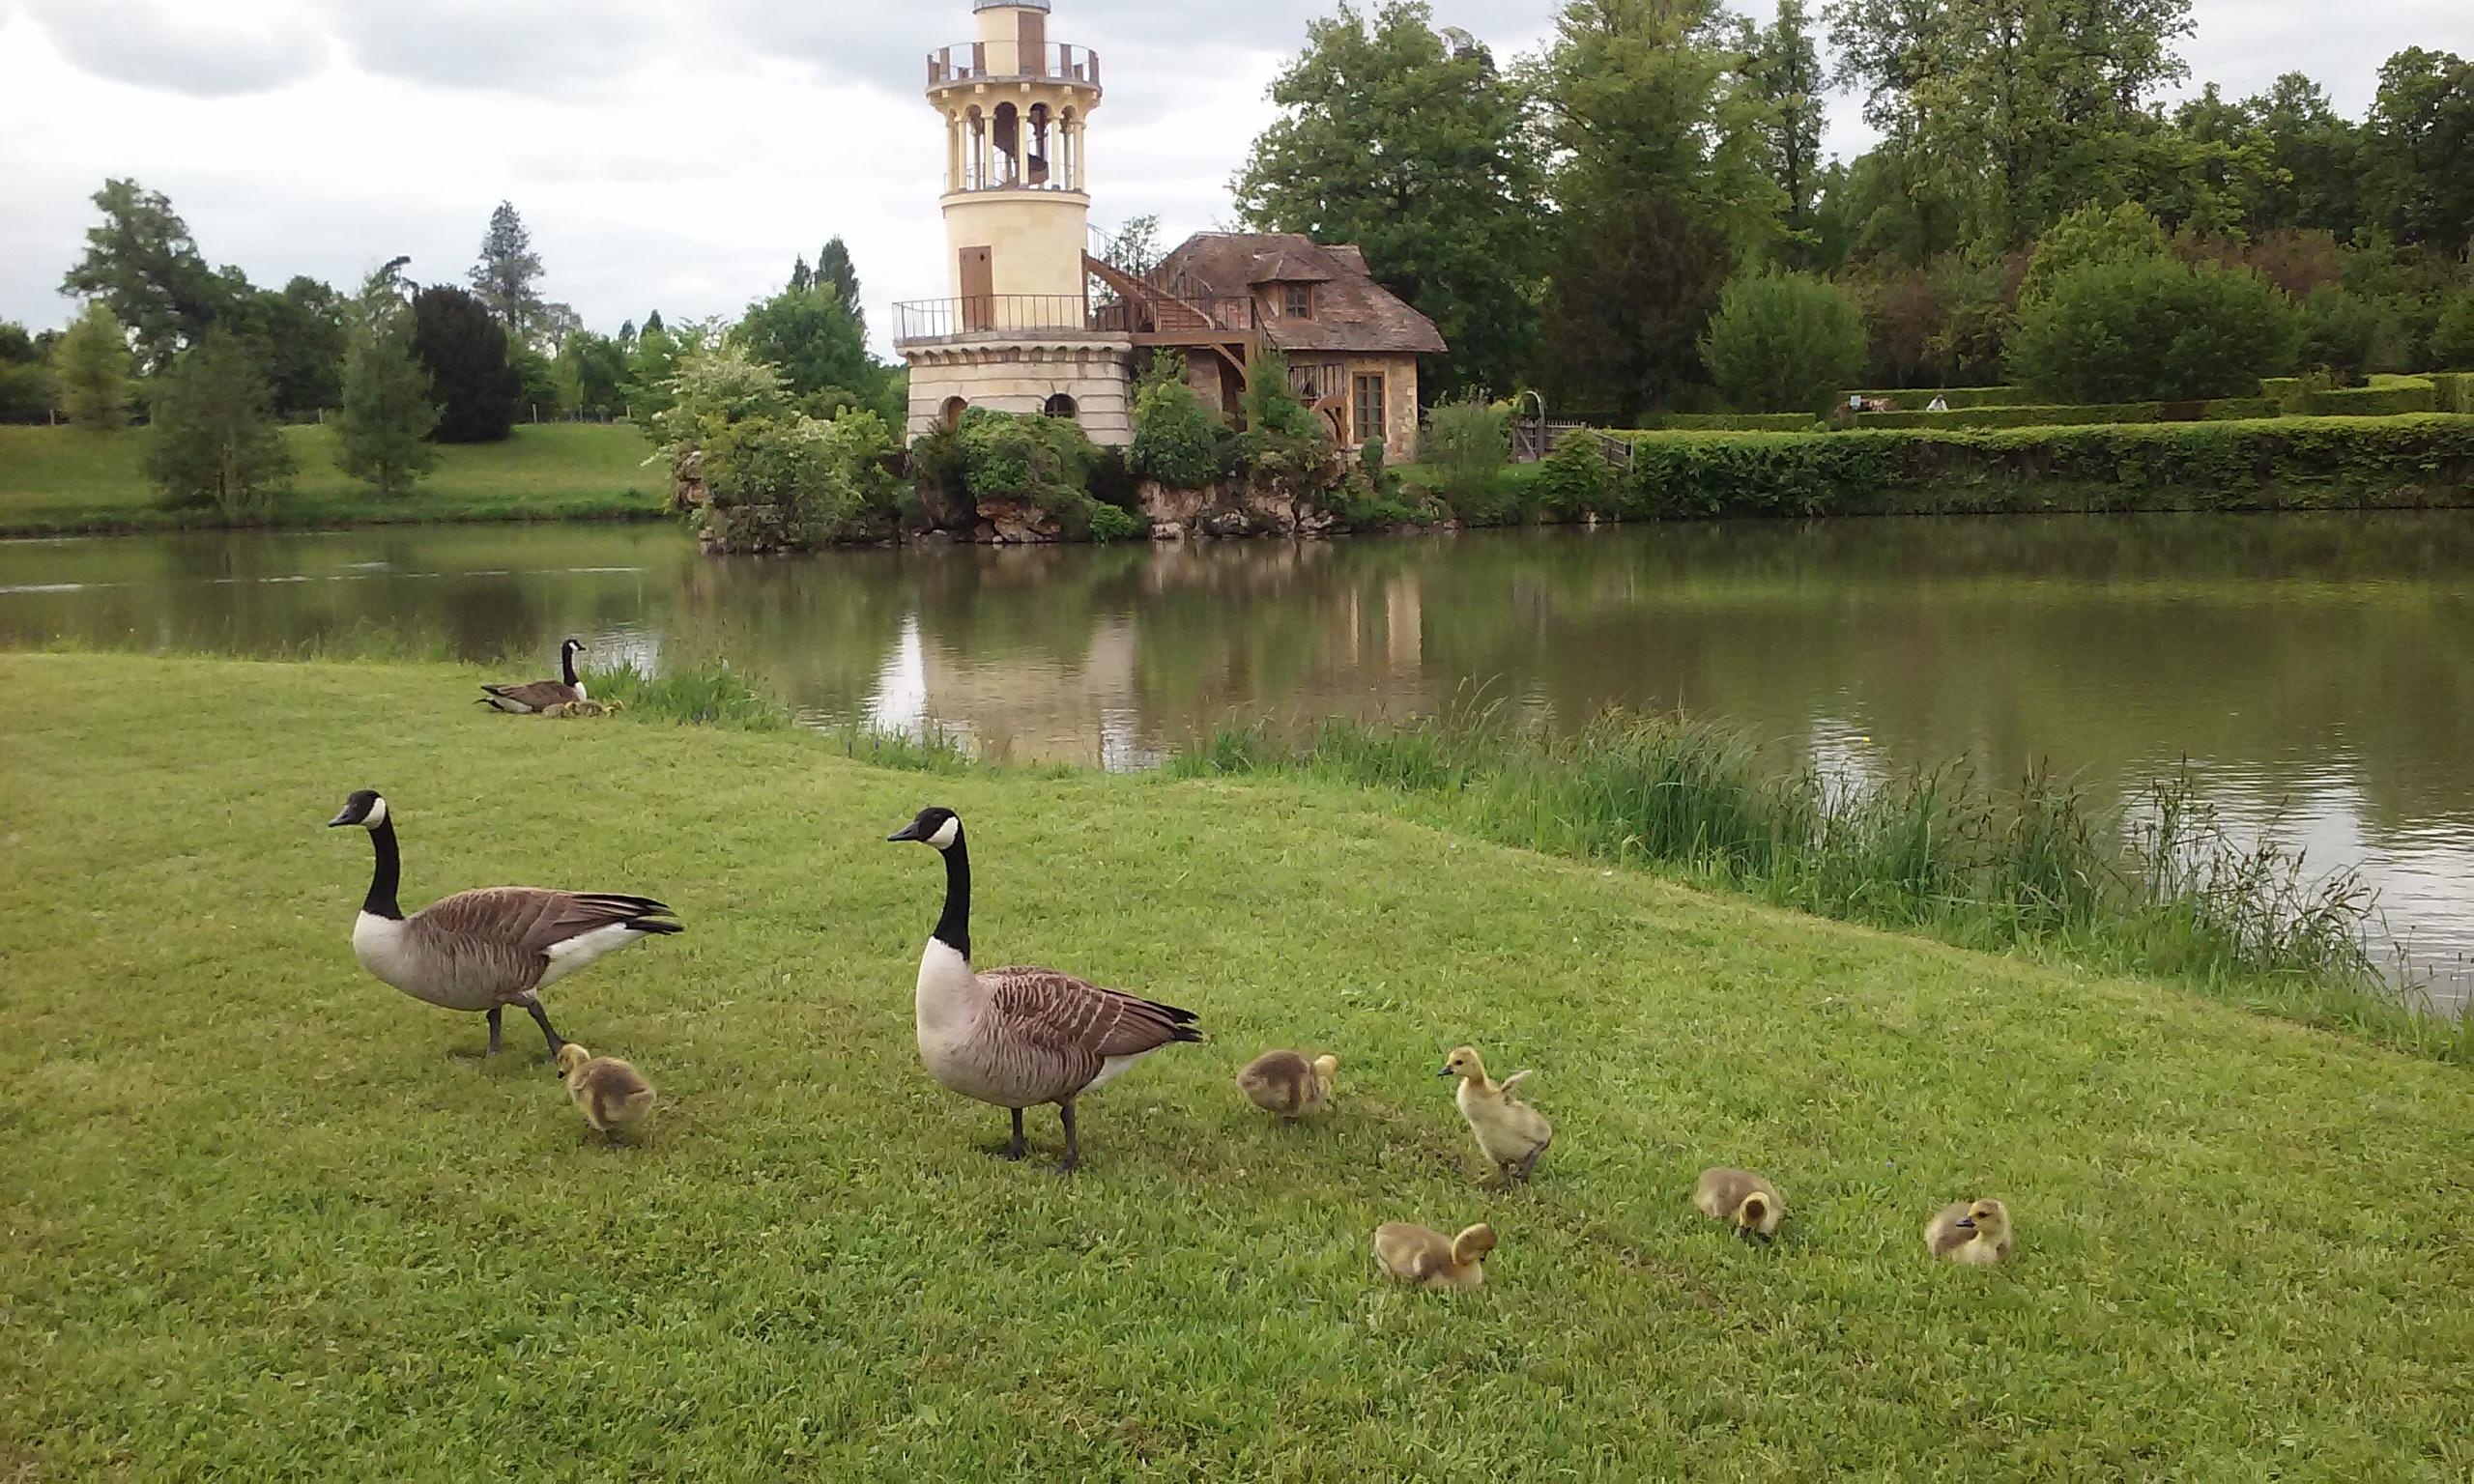 Marie Antoinette's English Hamlet at the Palace of Versailles. A picture of geese.